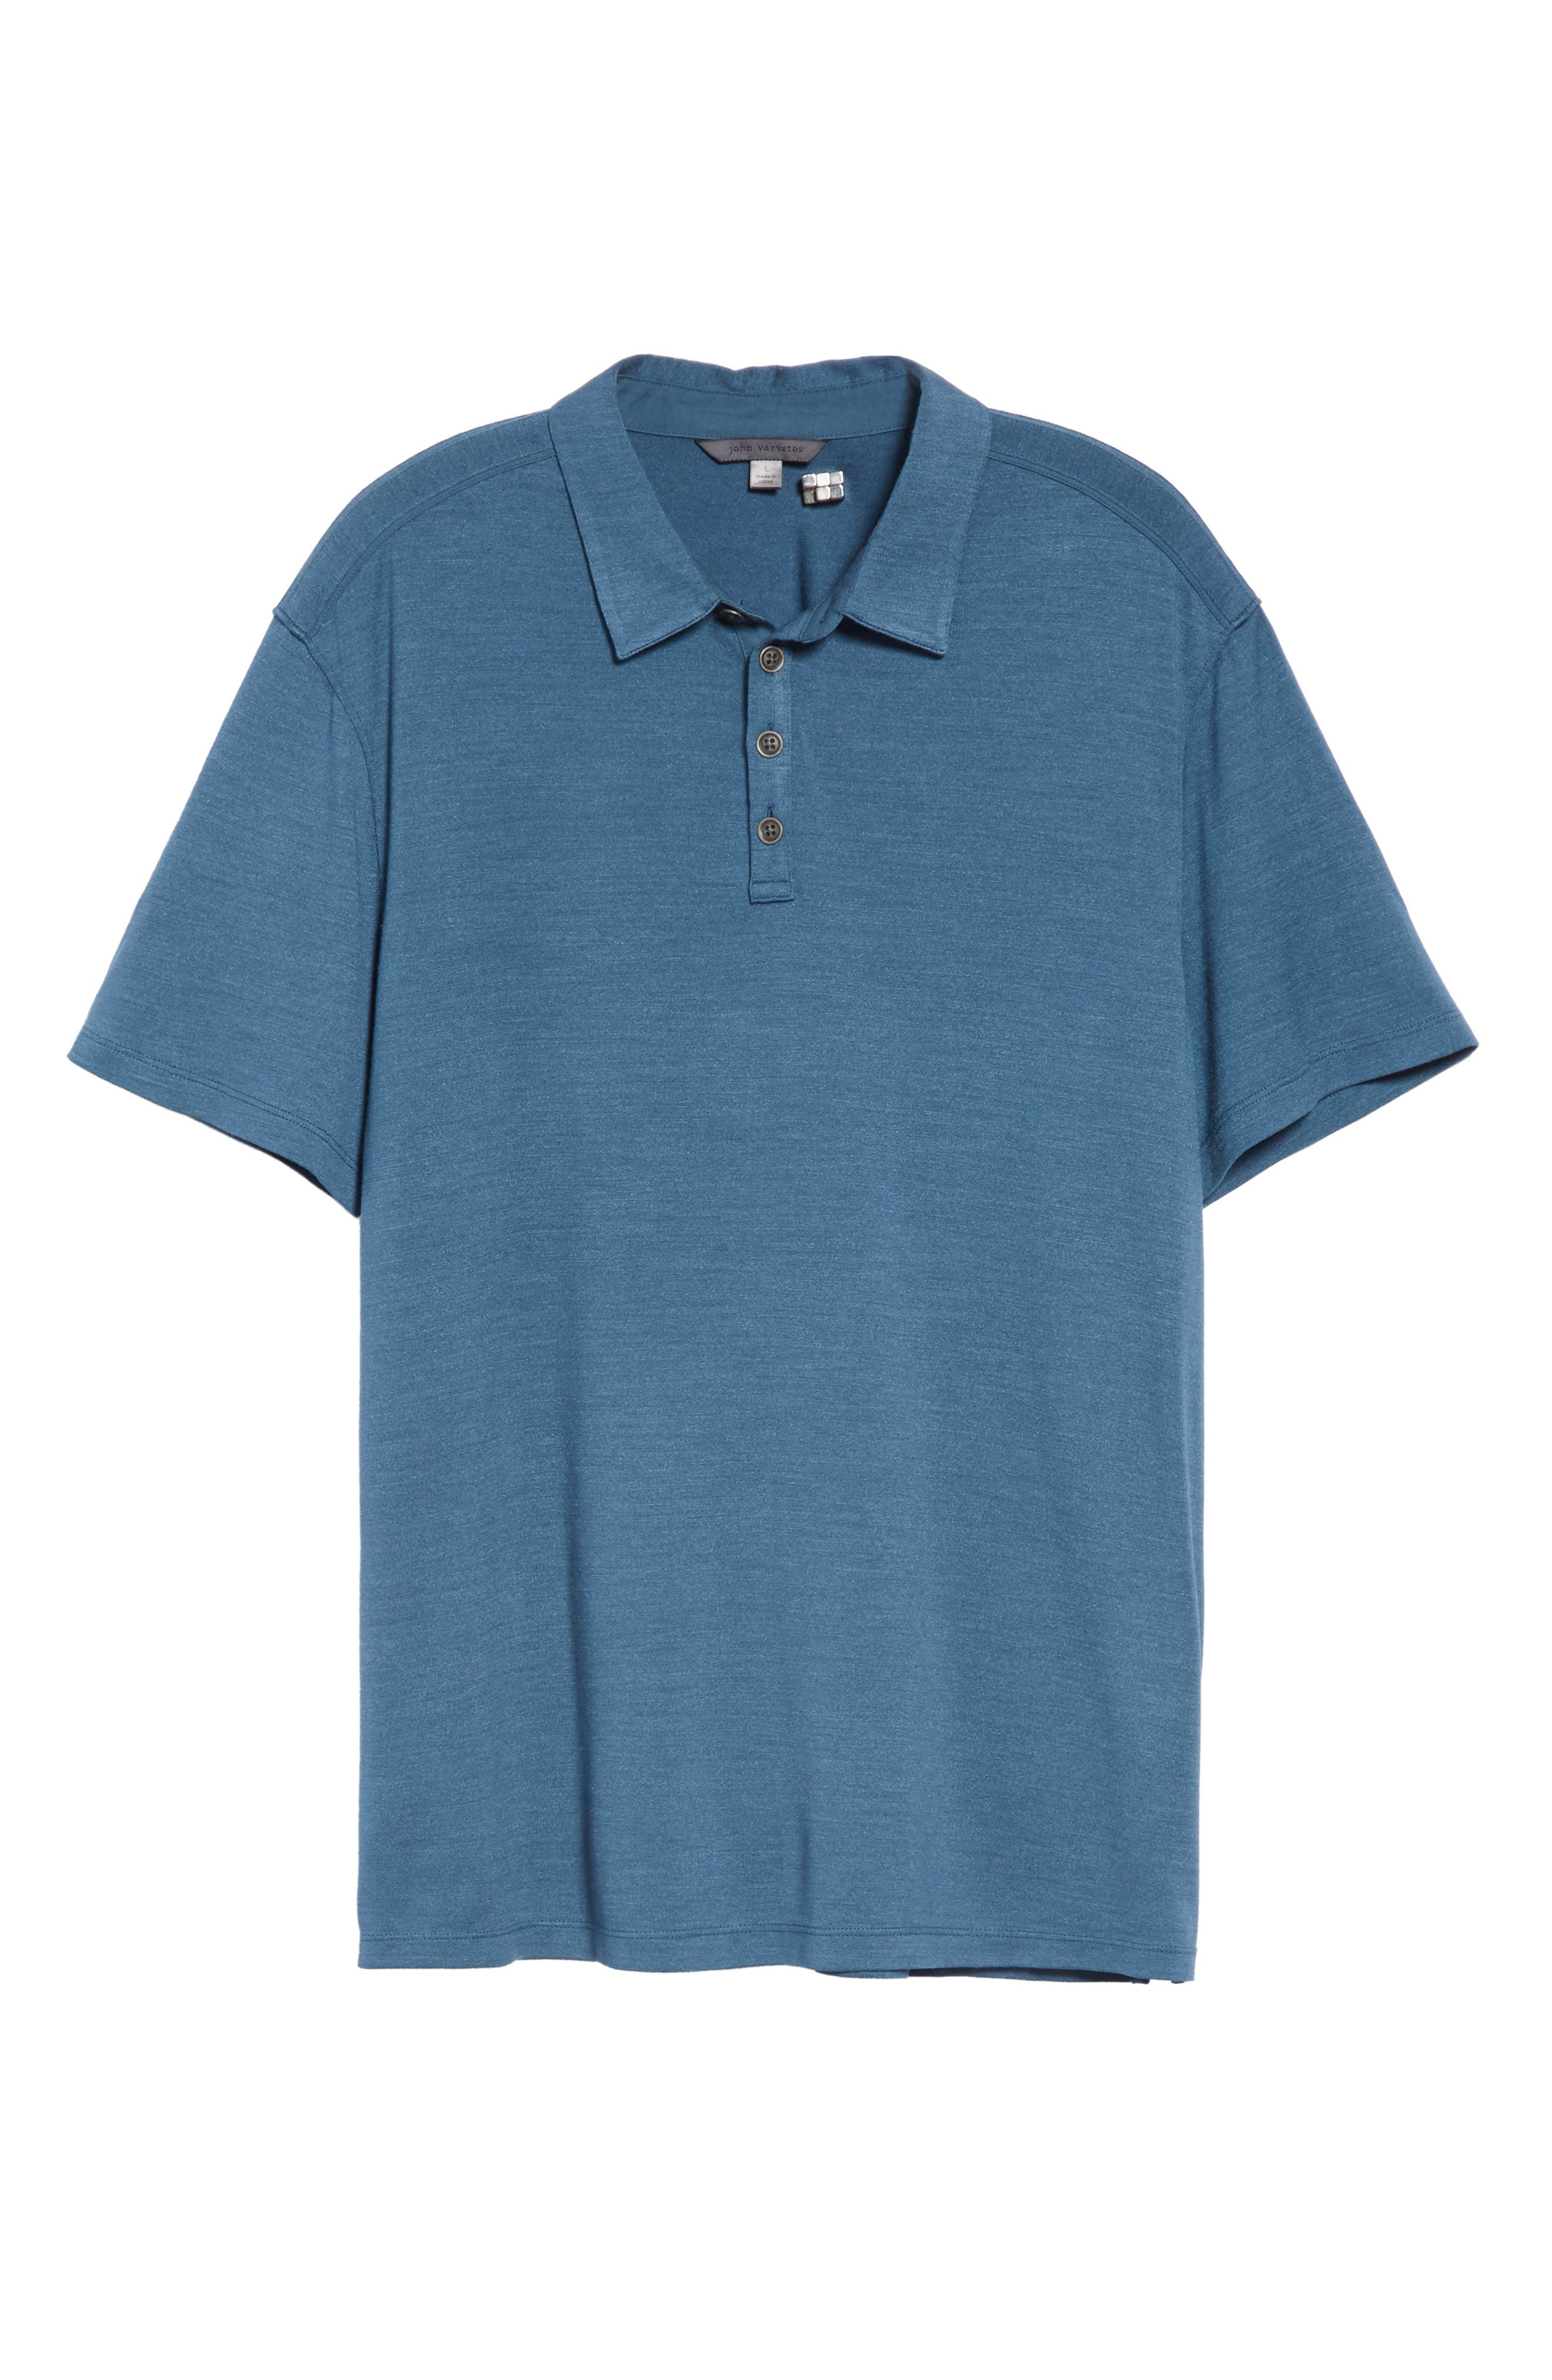 Hampton Jersey Polo,                             Alternate thumbnail 6, color,                             OCEAN BLUE